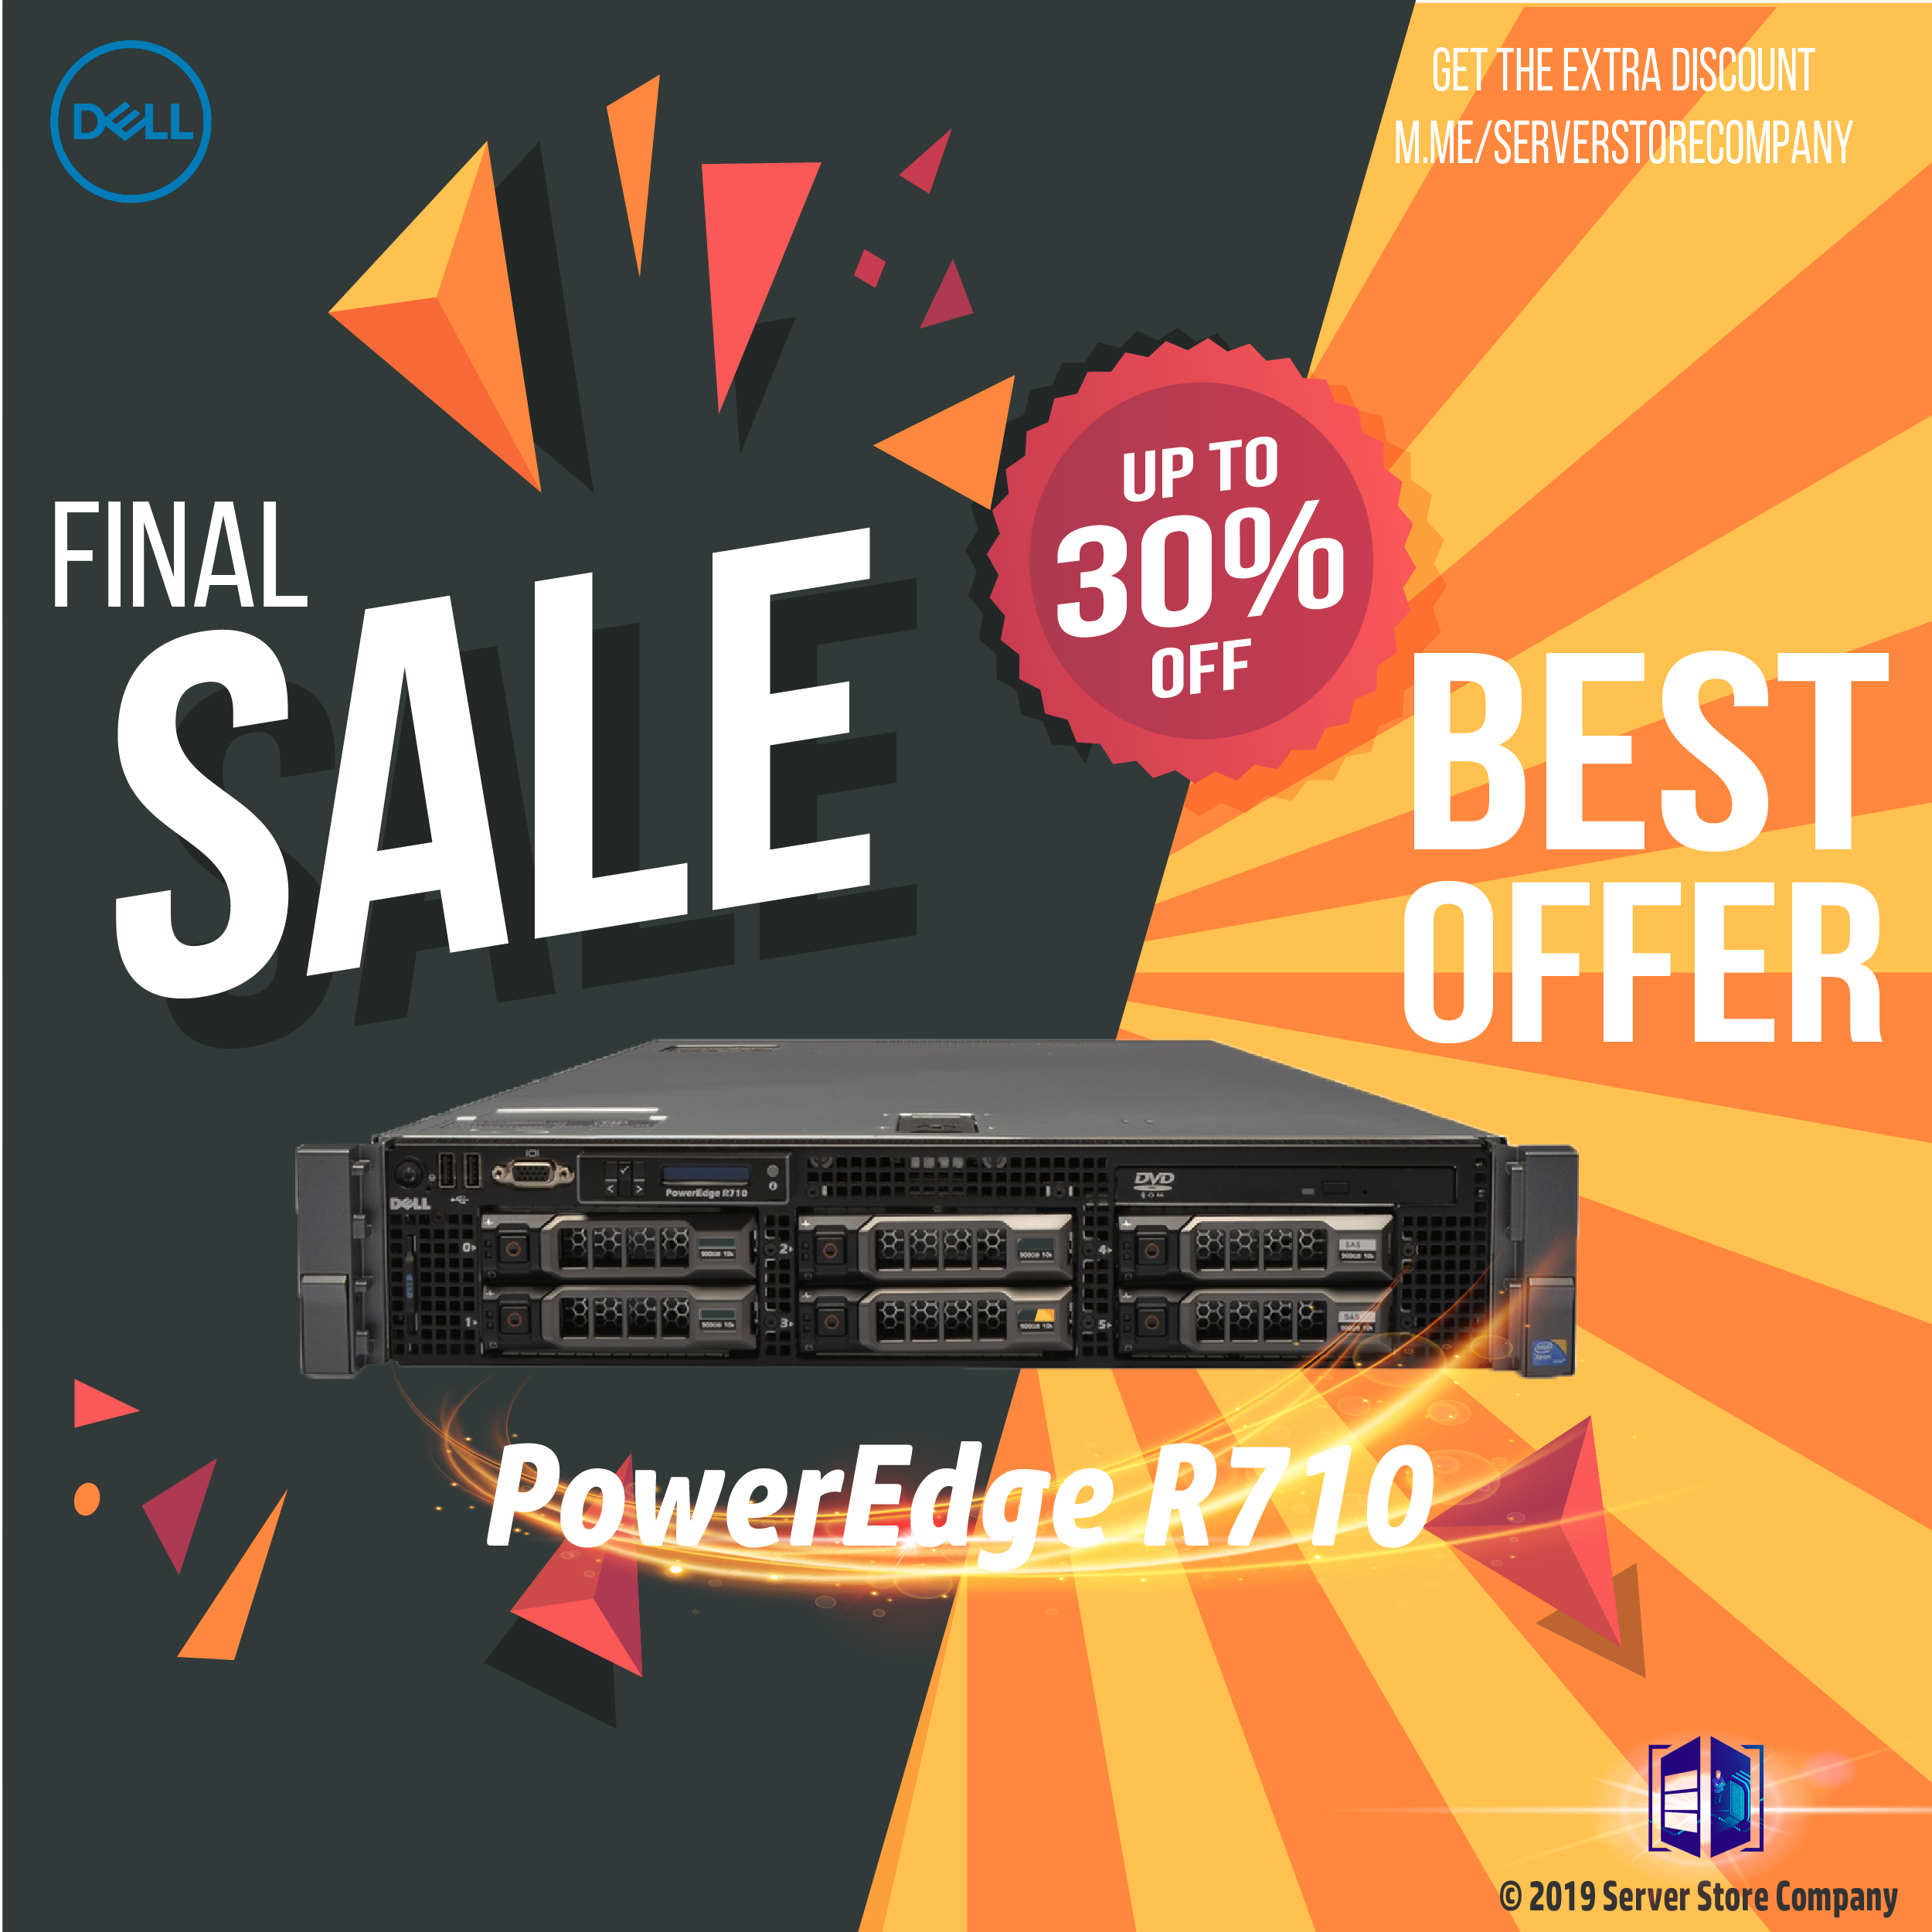 Dell ™ PowerEdge R710 The Dell PowerEdge R710, with the performance